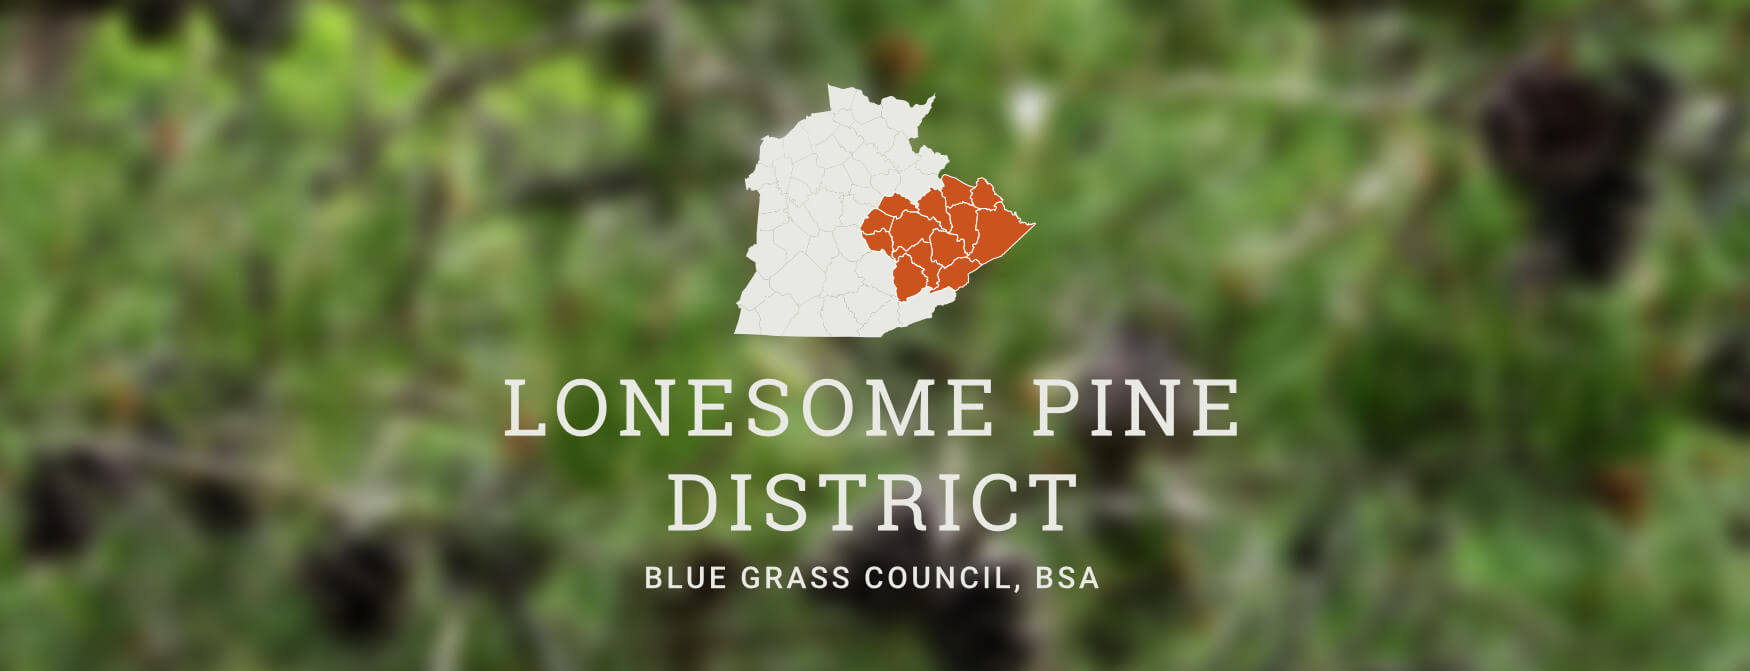 Lonesome Pine District